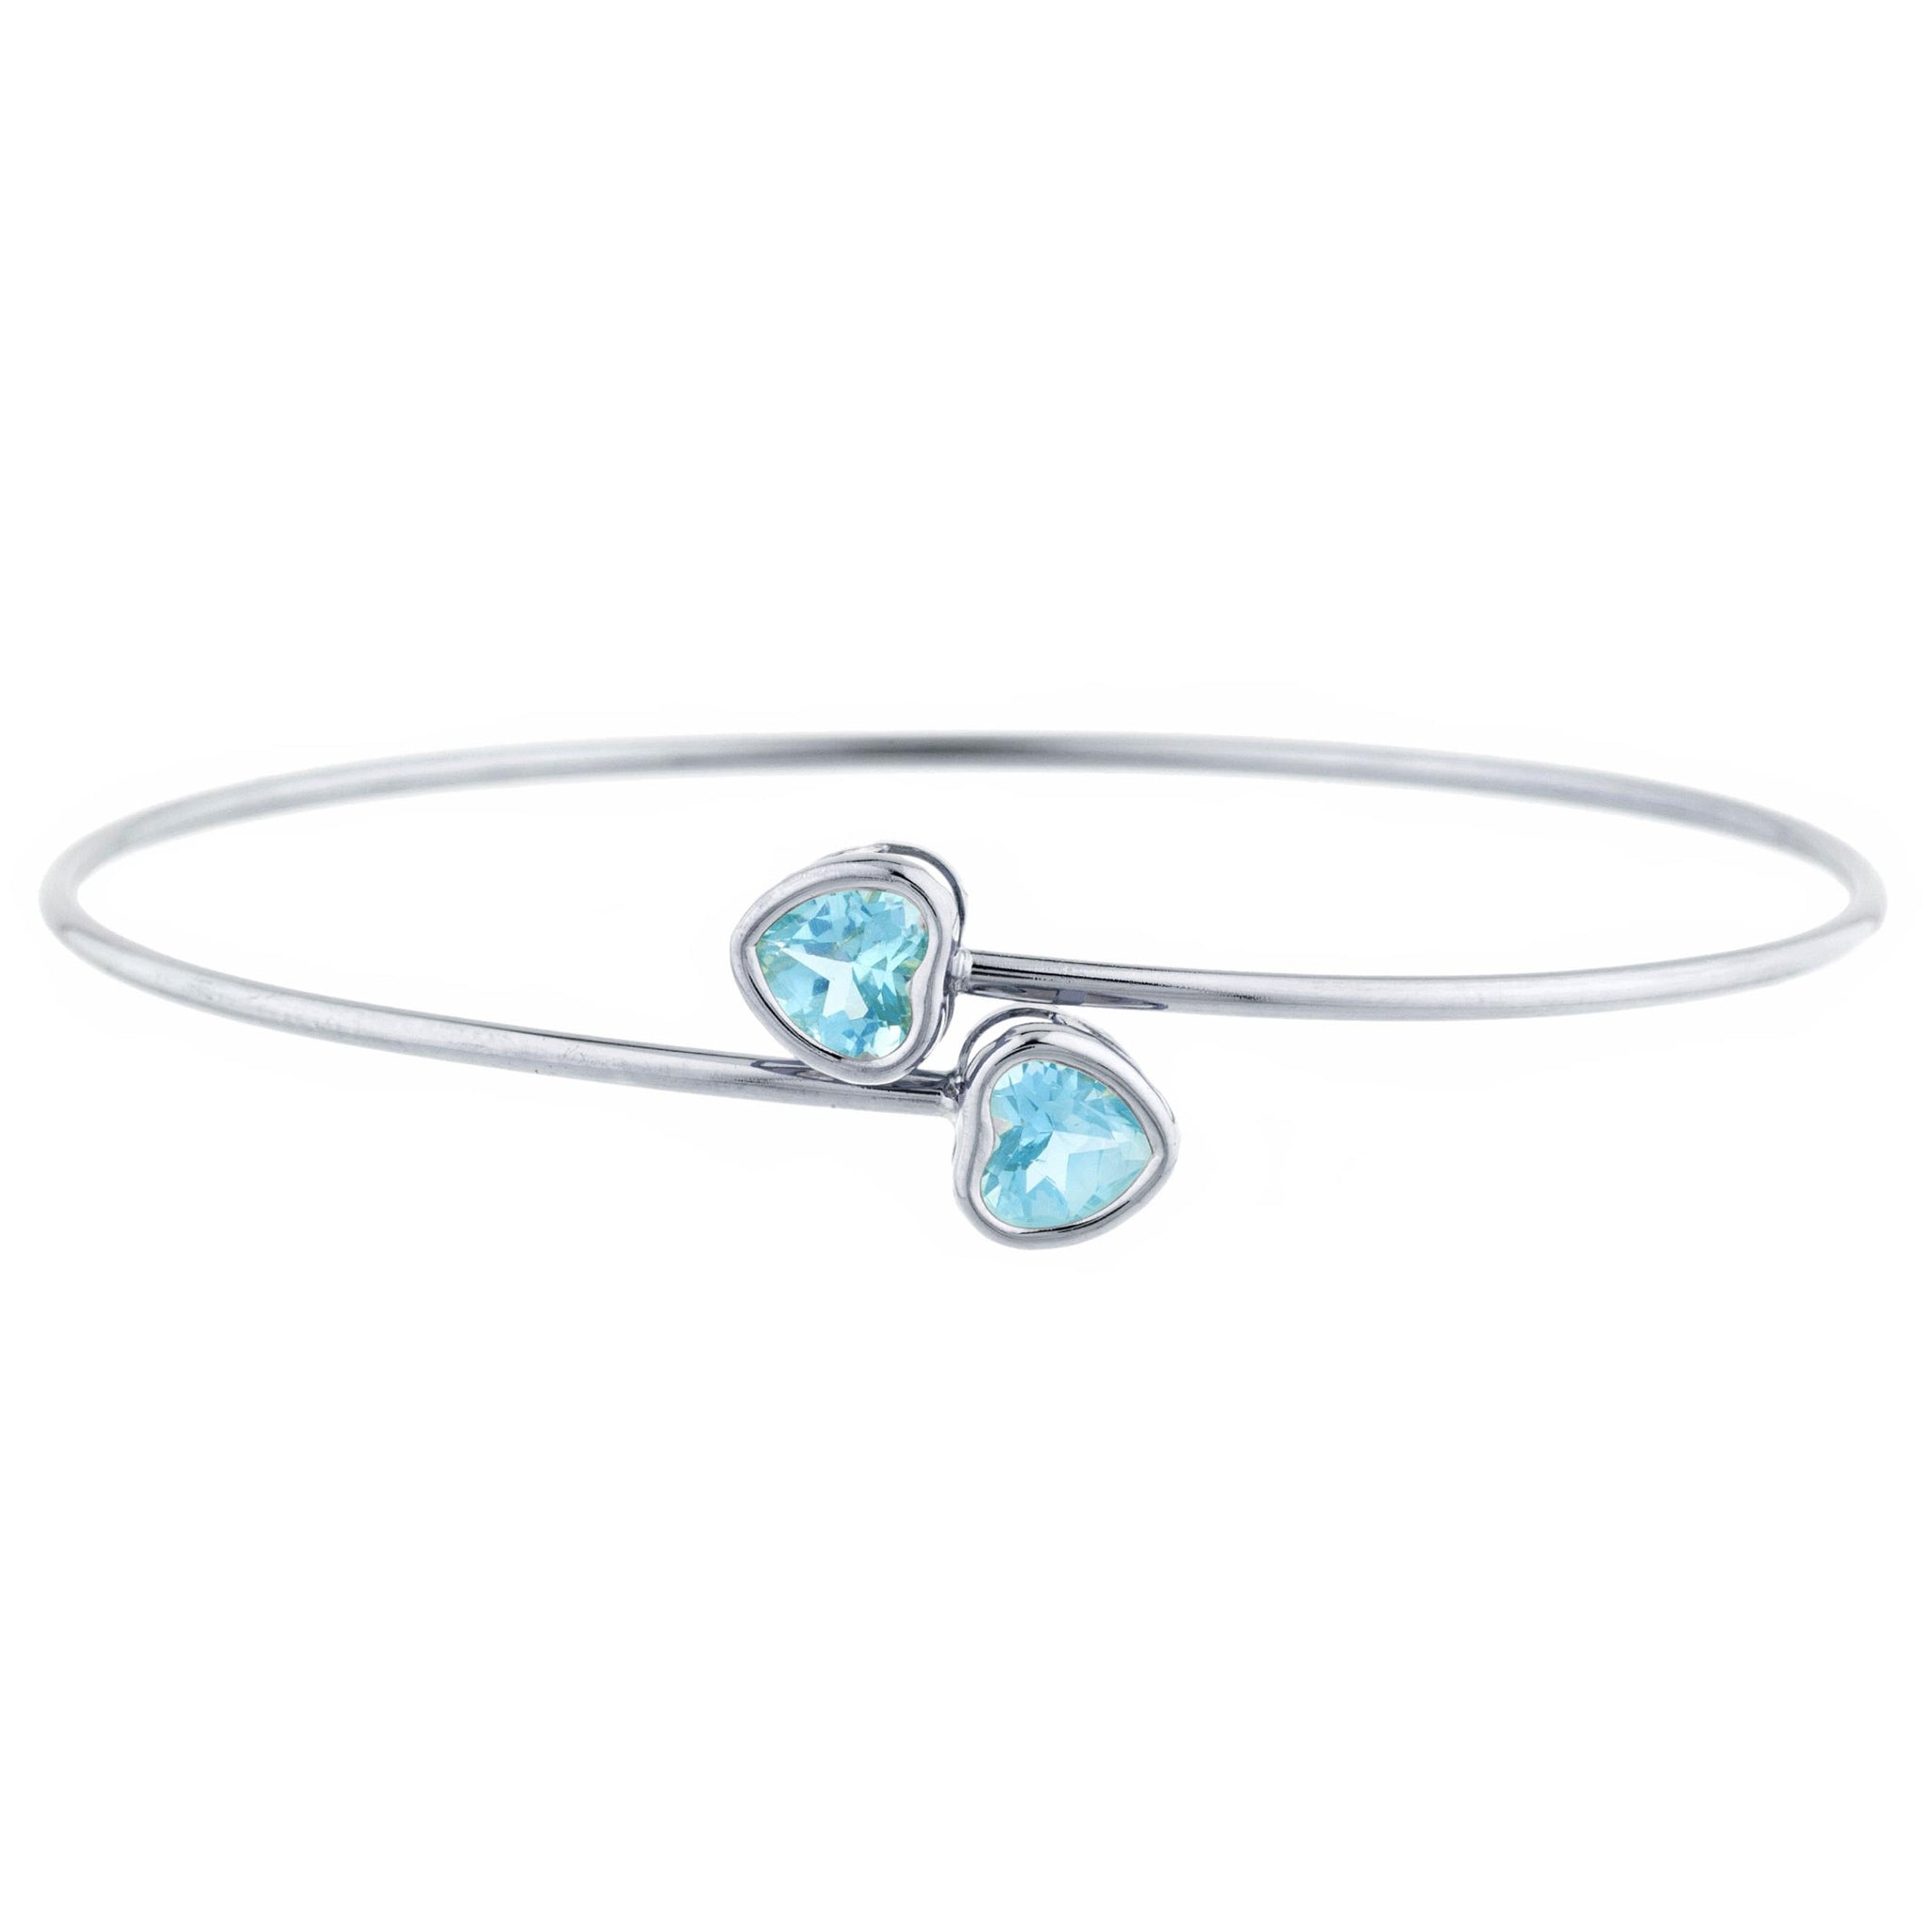 2 Ct Blue Topaz Heart Bezel Bangle Bracelet .925 Sterling Silver